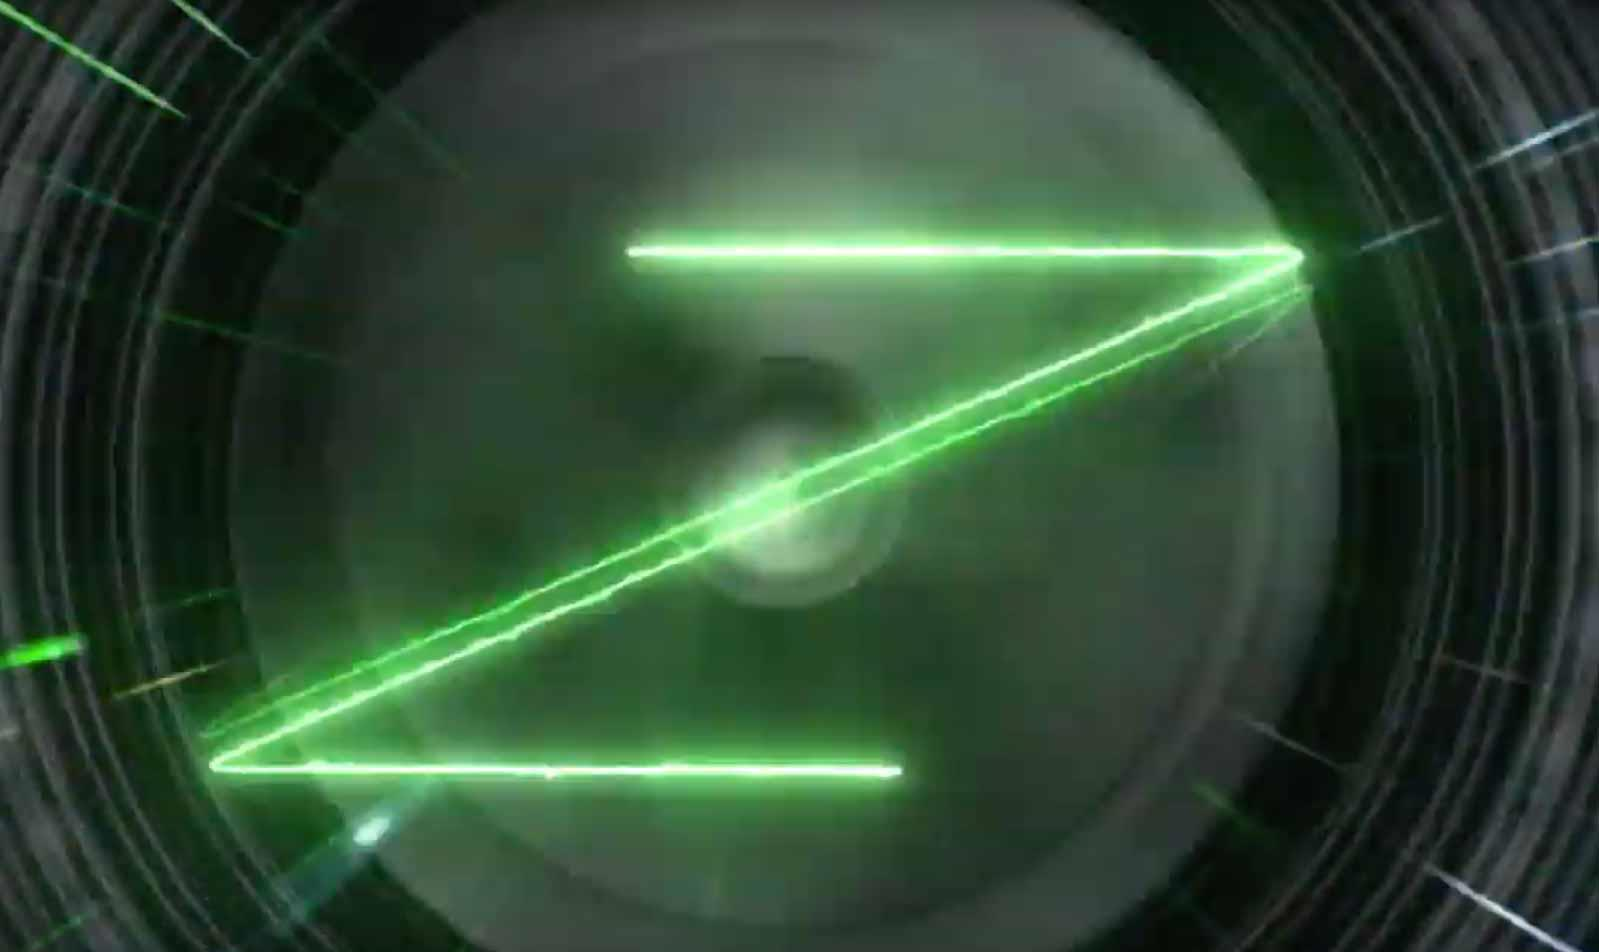 The first video shows the distinctive Kawasaki Z logo